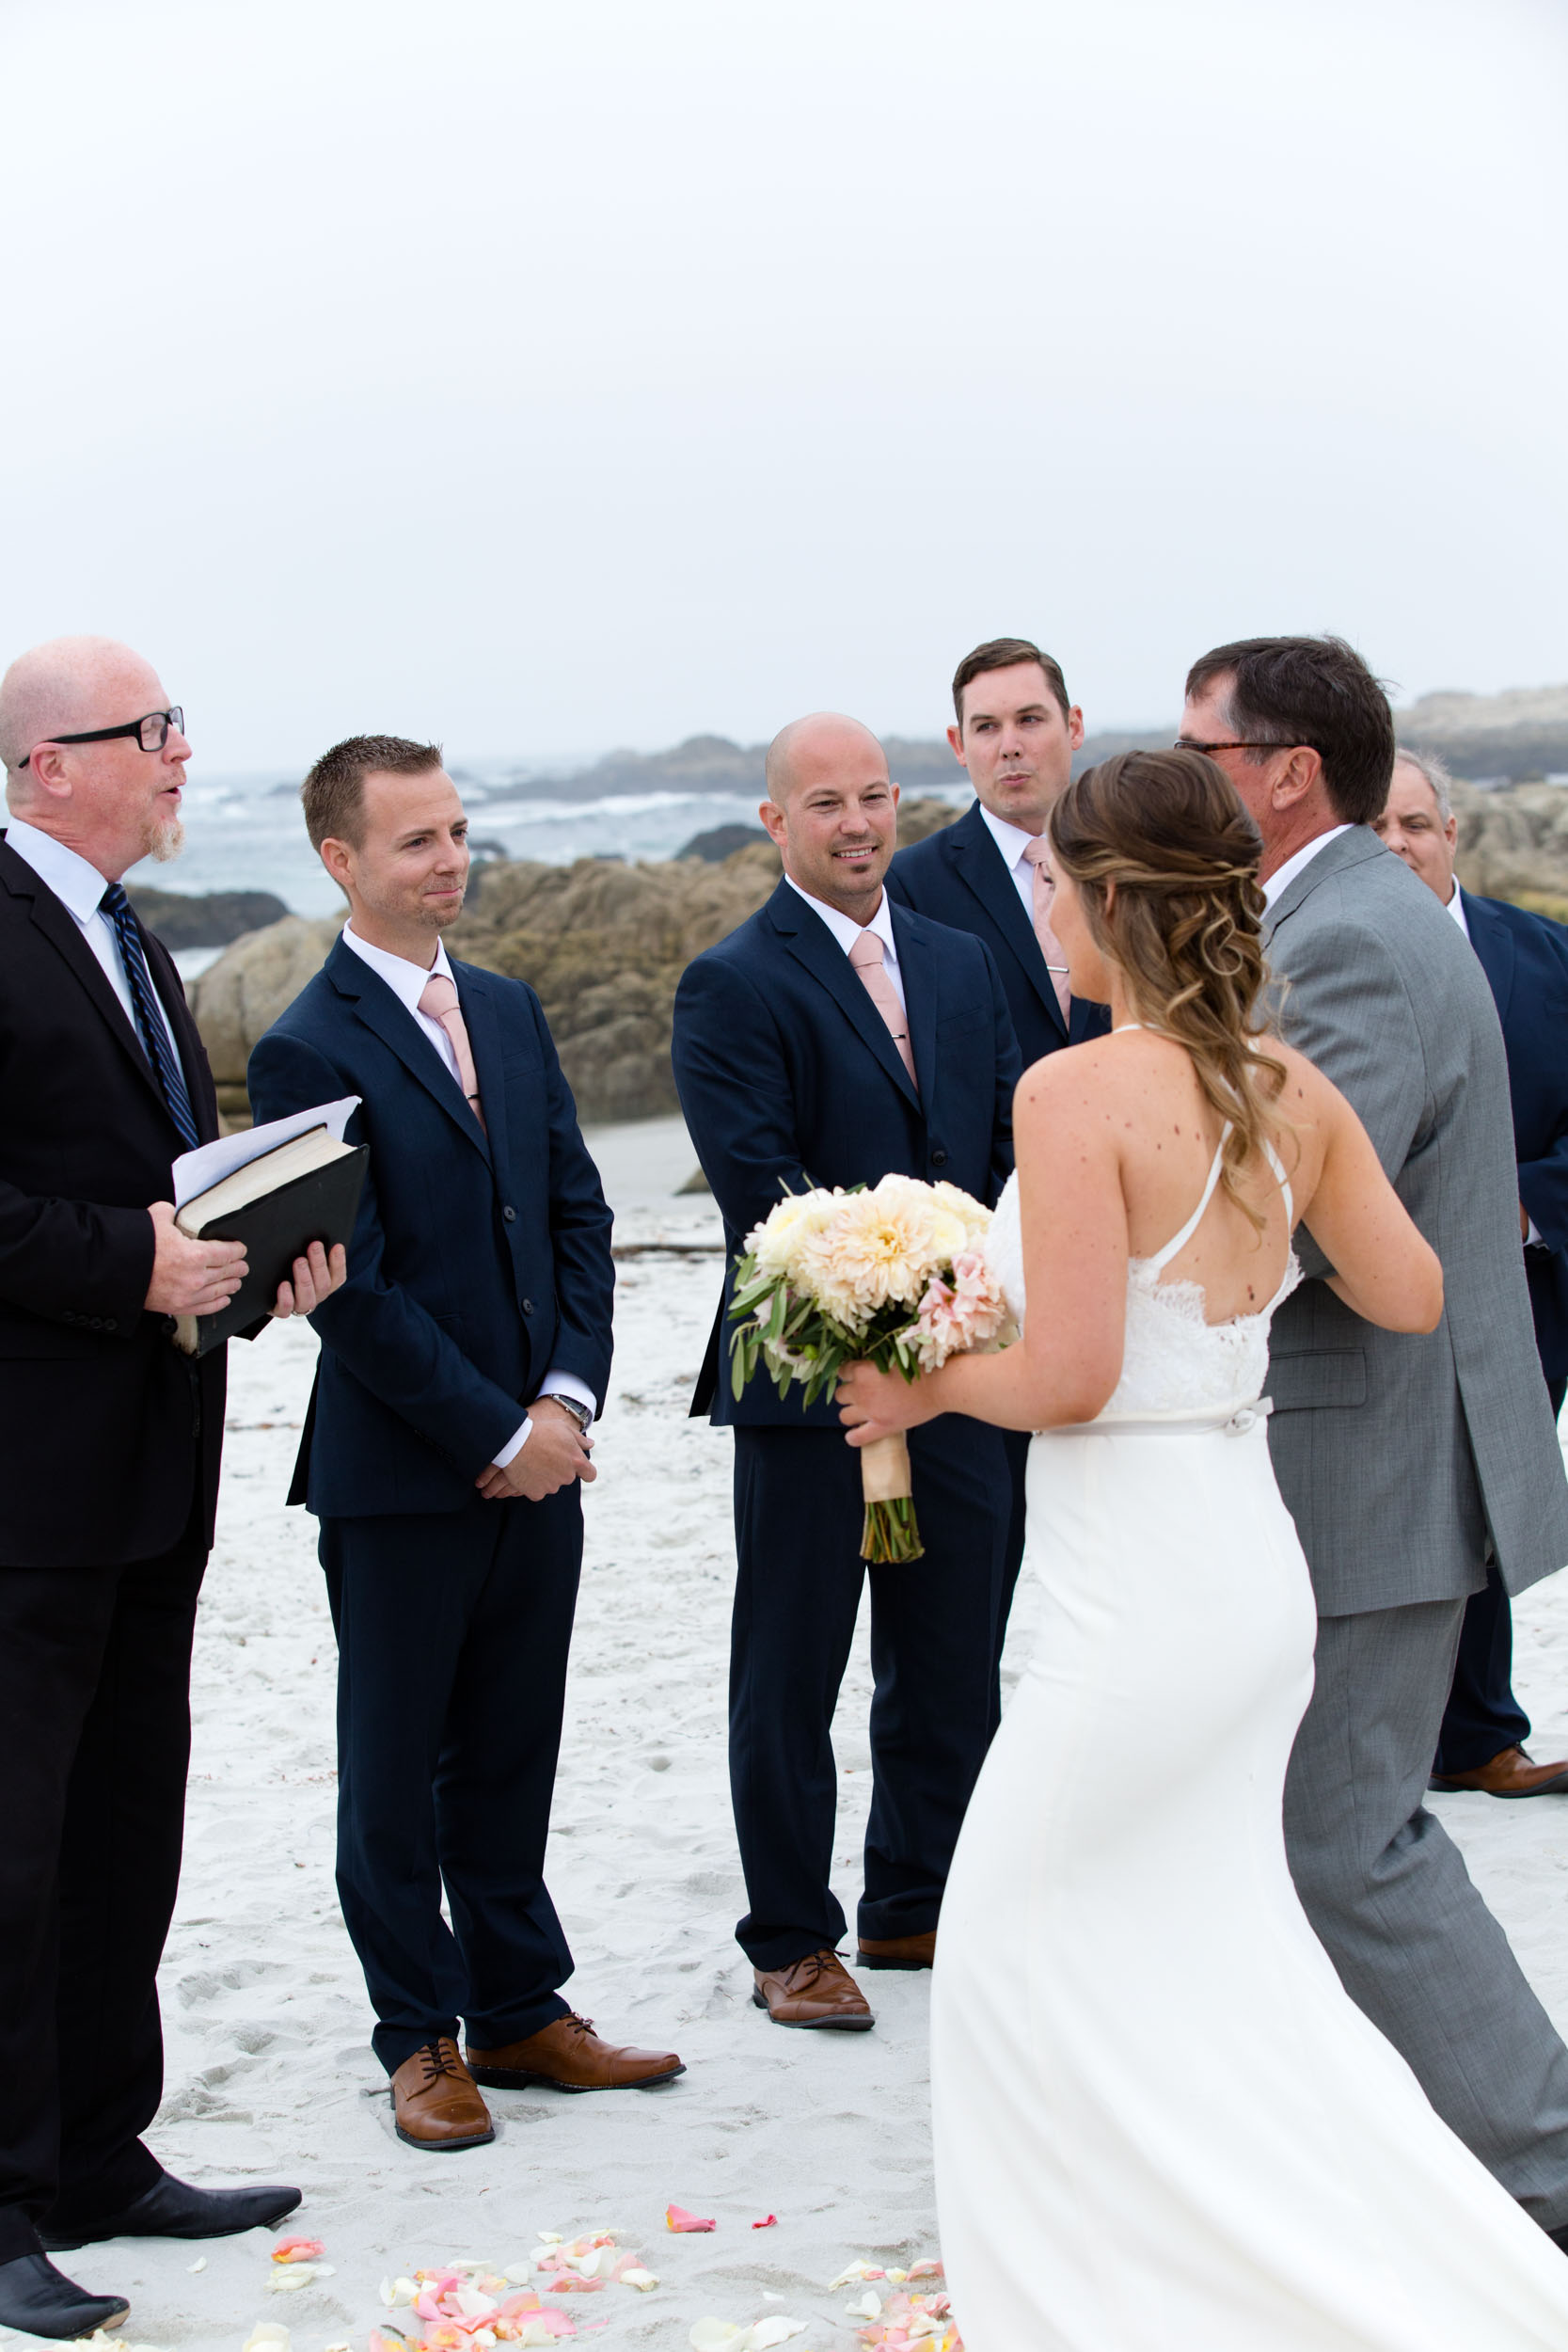 Our Wedding-301